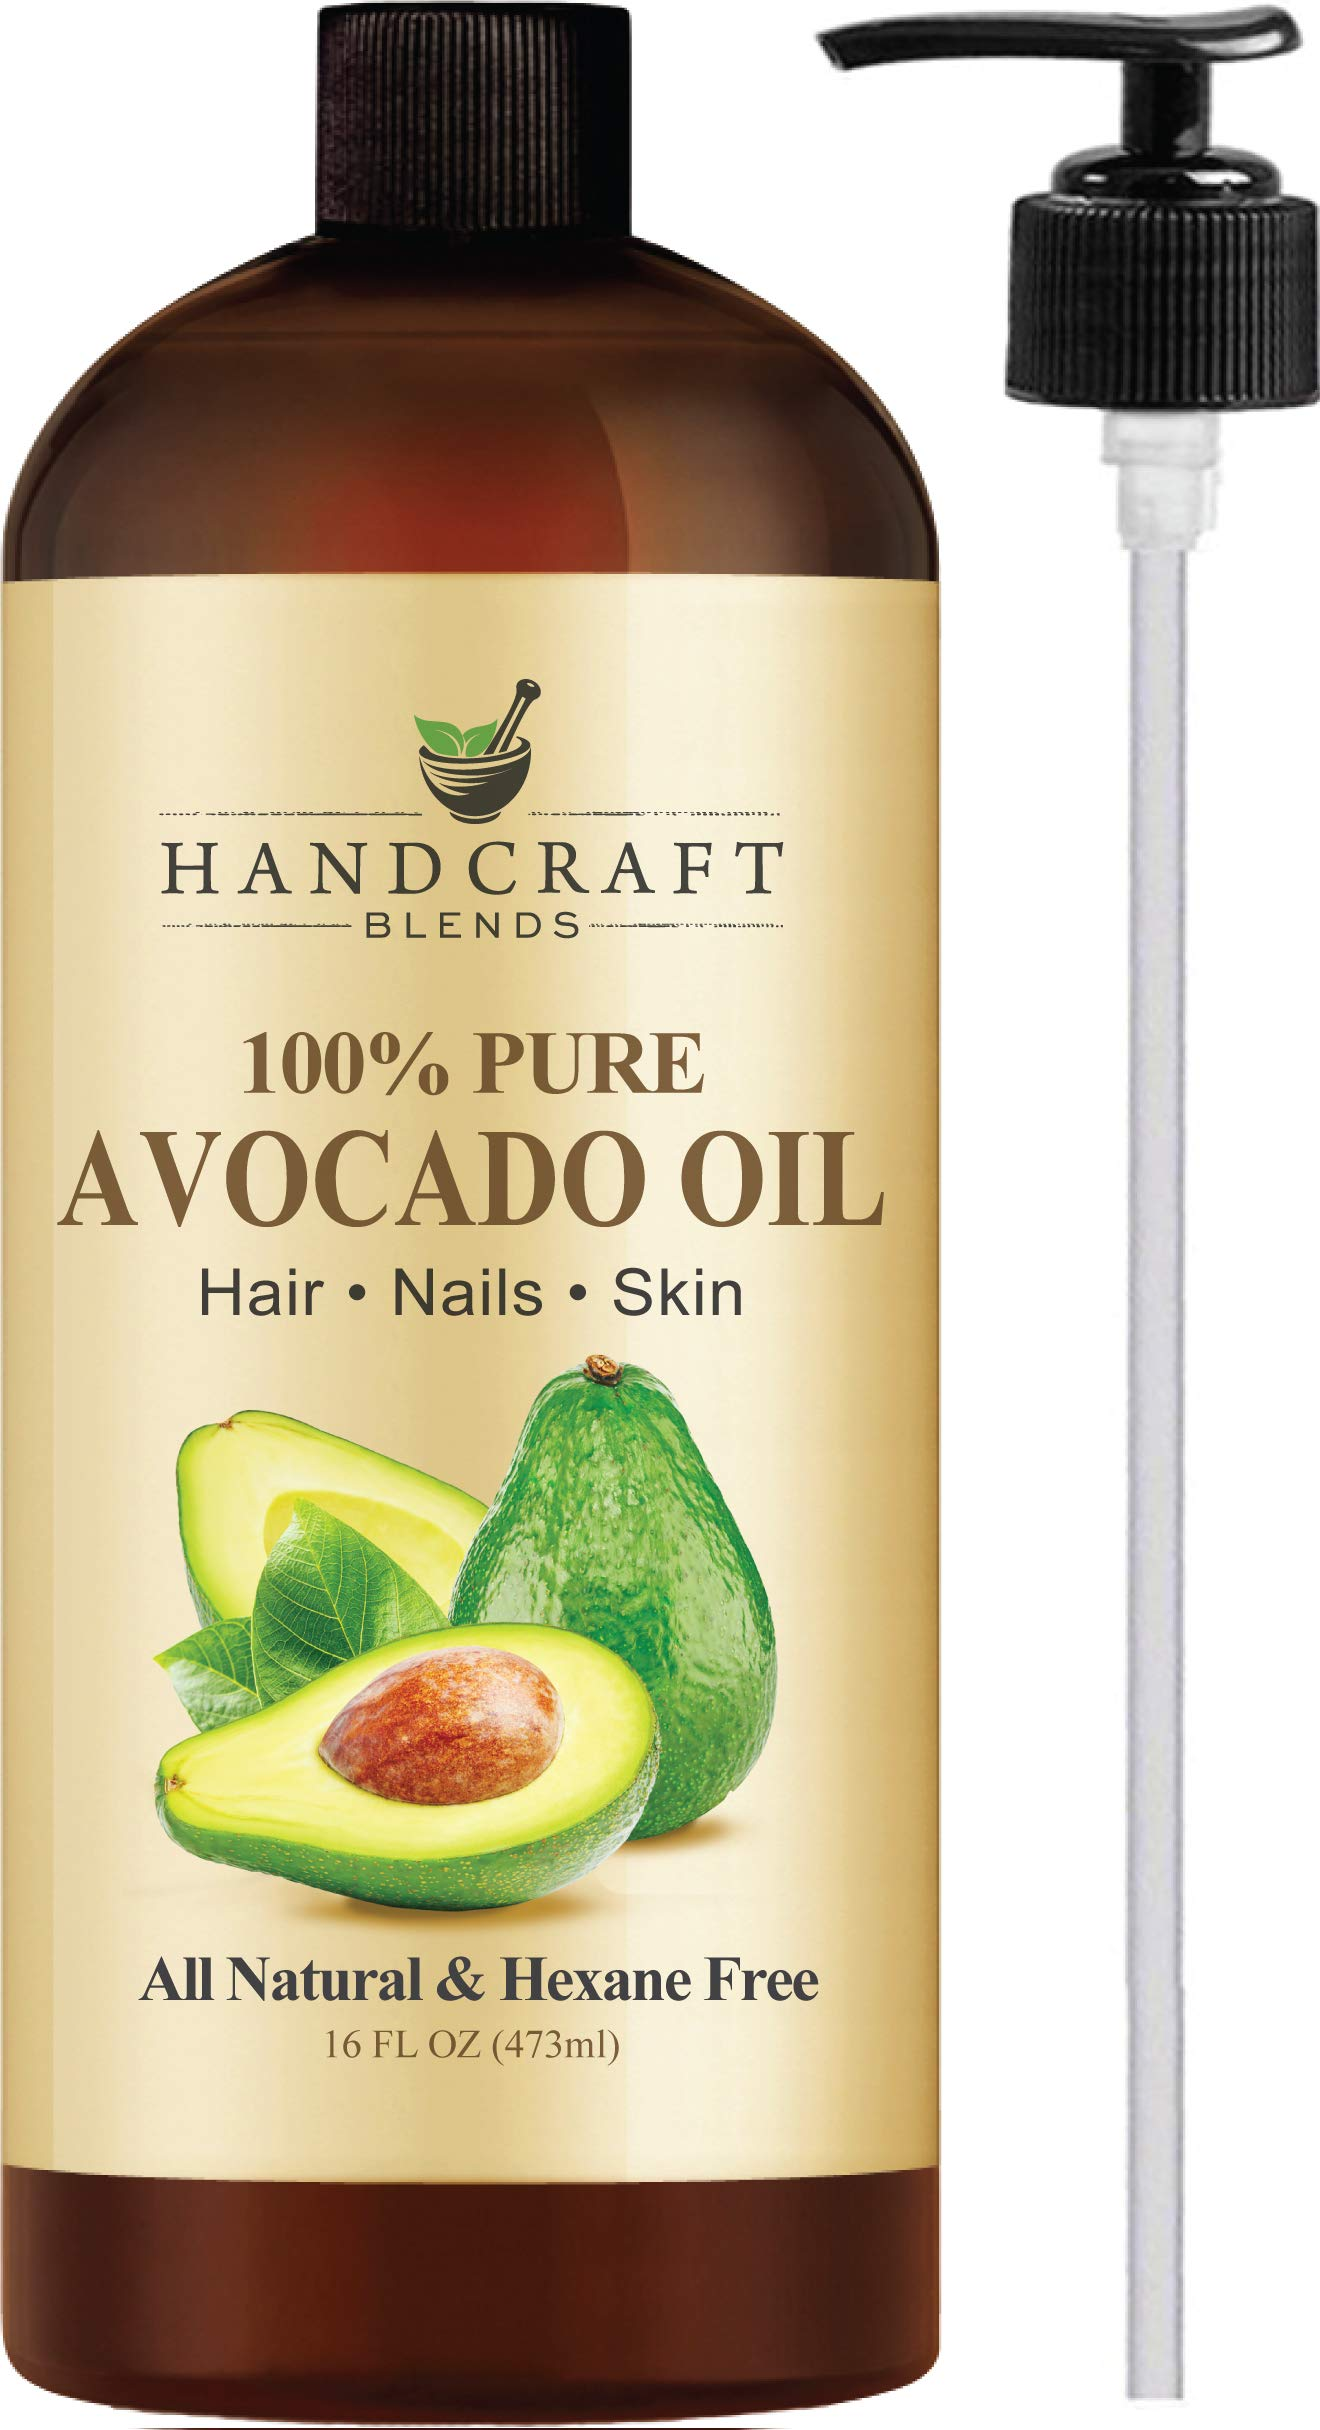 Handcraft Pure Avocado Oil - 100 Percent All Natural - Premium Quality Cold Pressed Carrier Oil for Aromatherapy, Massage and Moisturizing Skin - Hexane Free - 16 oz by Handcraft Blends